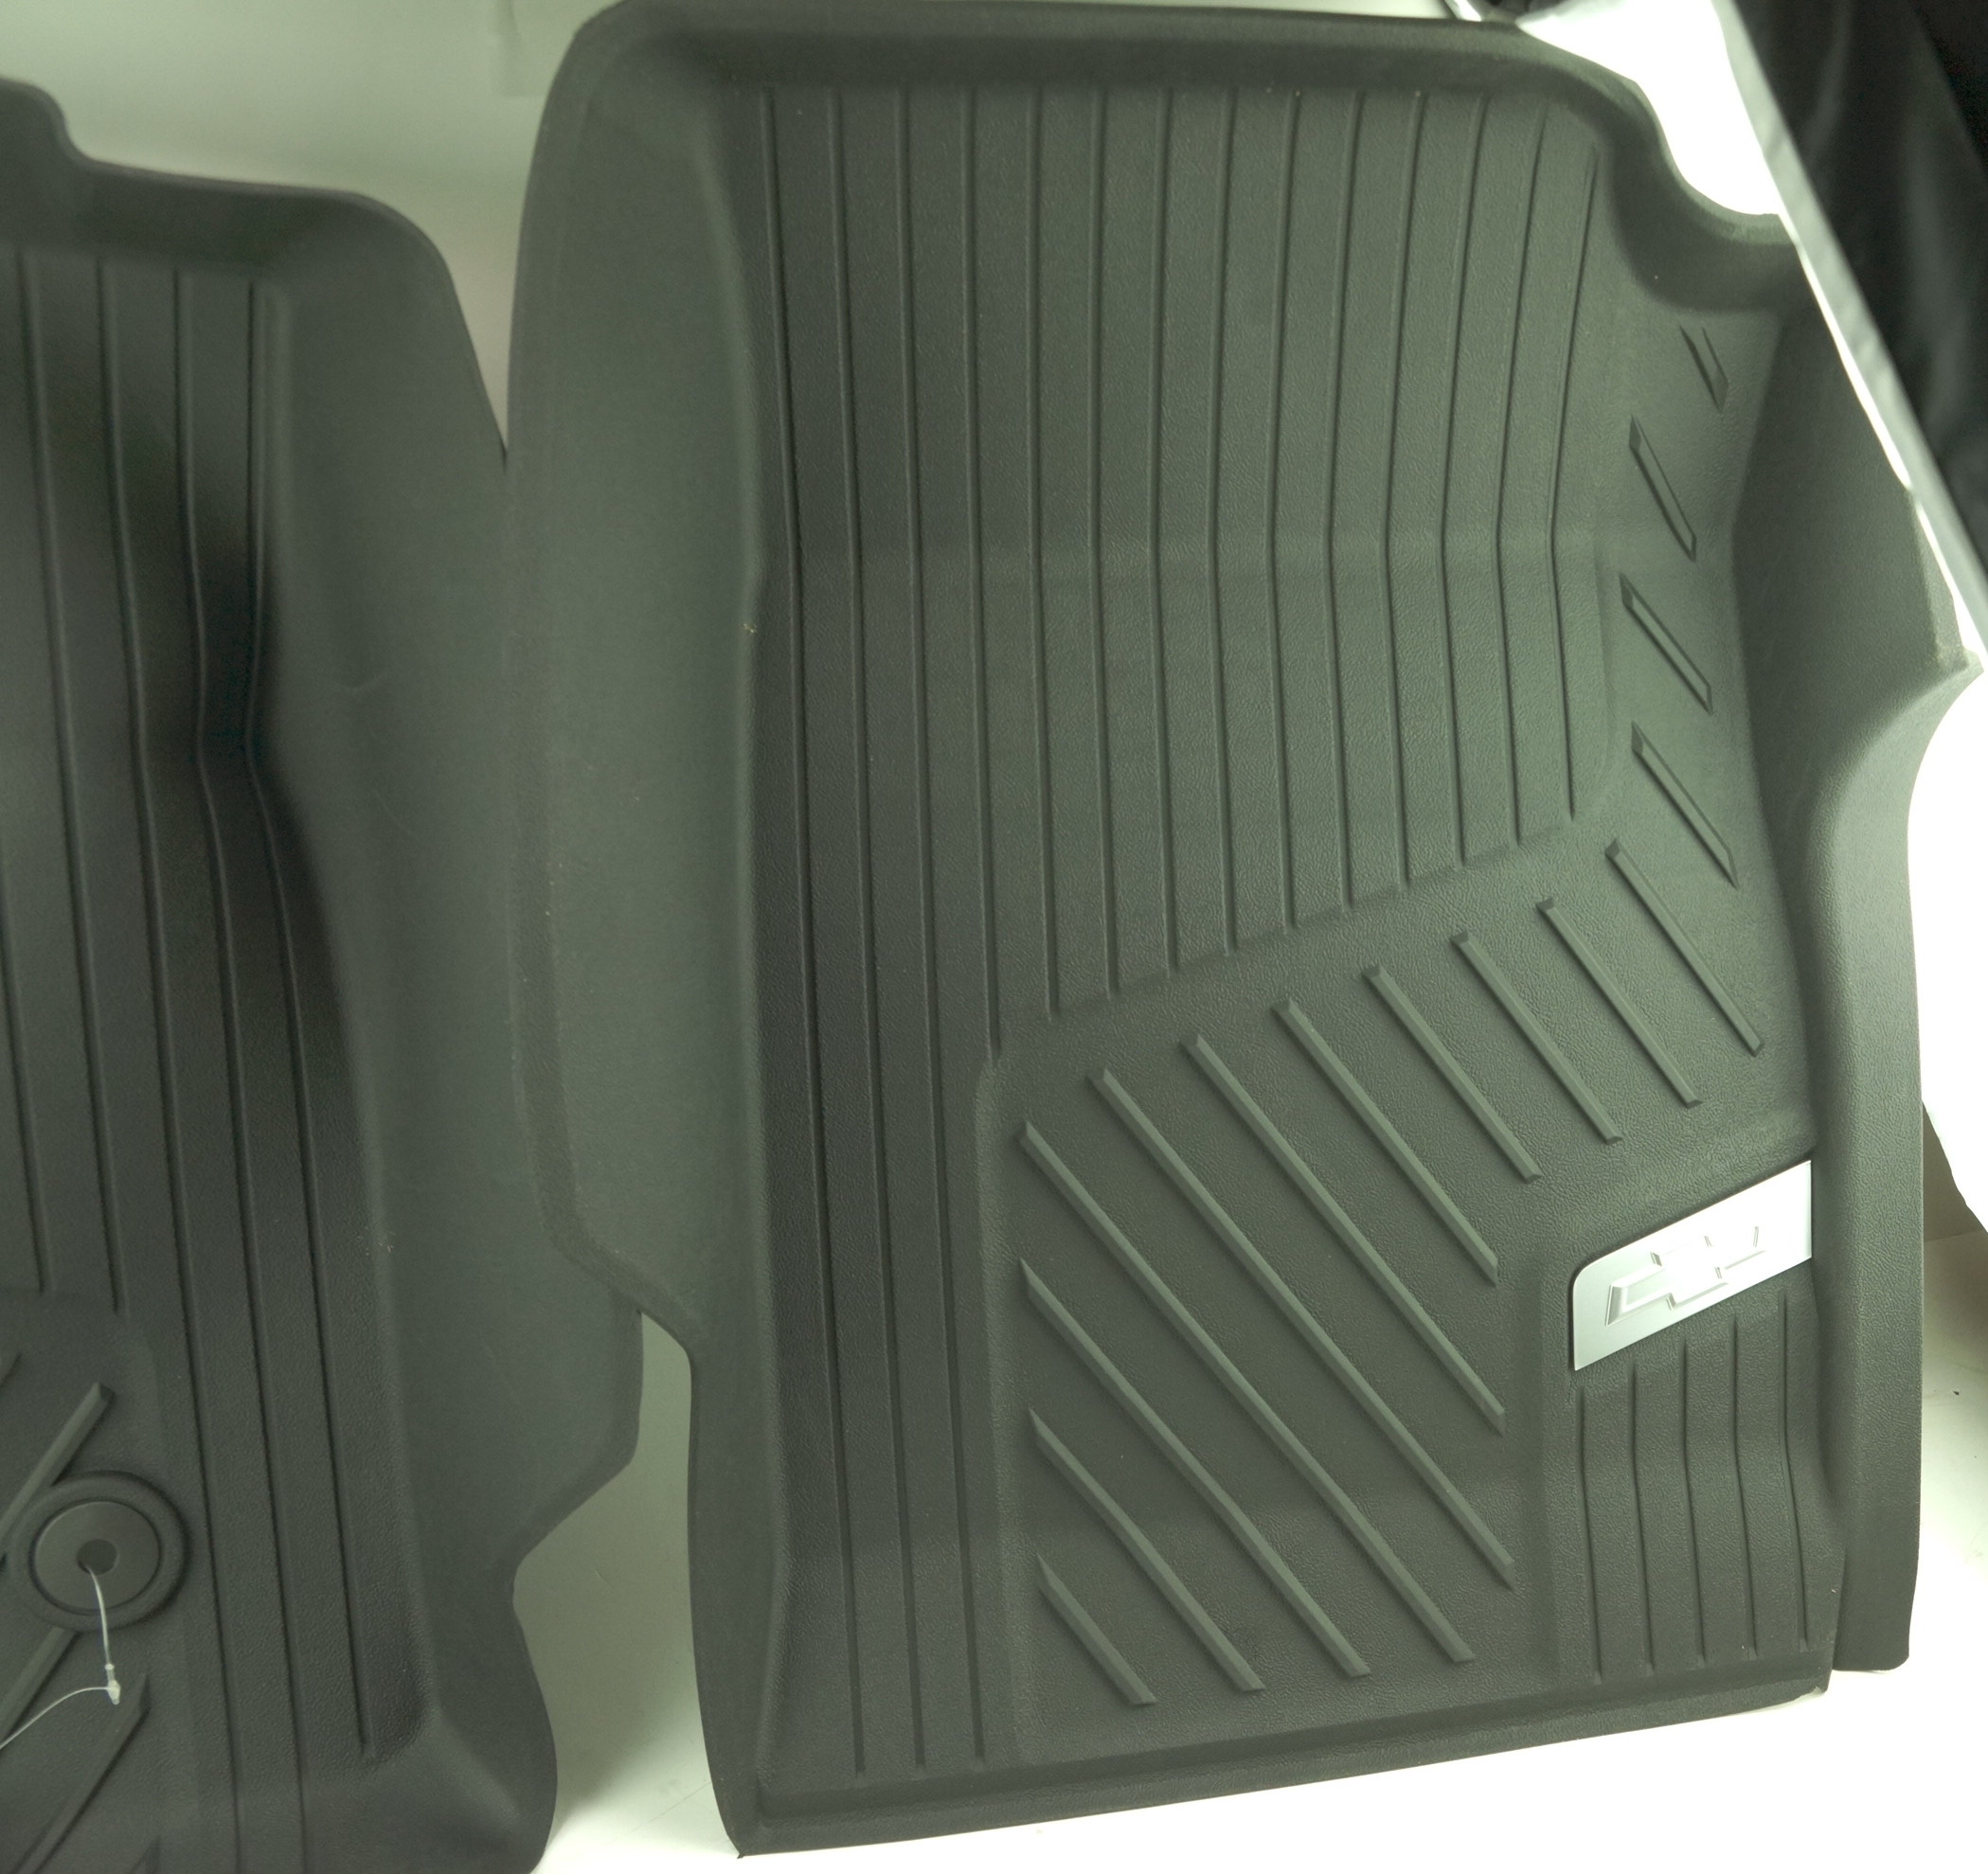 New OEM 84370633 GM 15-21 Colorado Front All Weather Floor Liners Black w/Bowtie - image 5